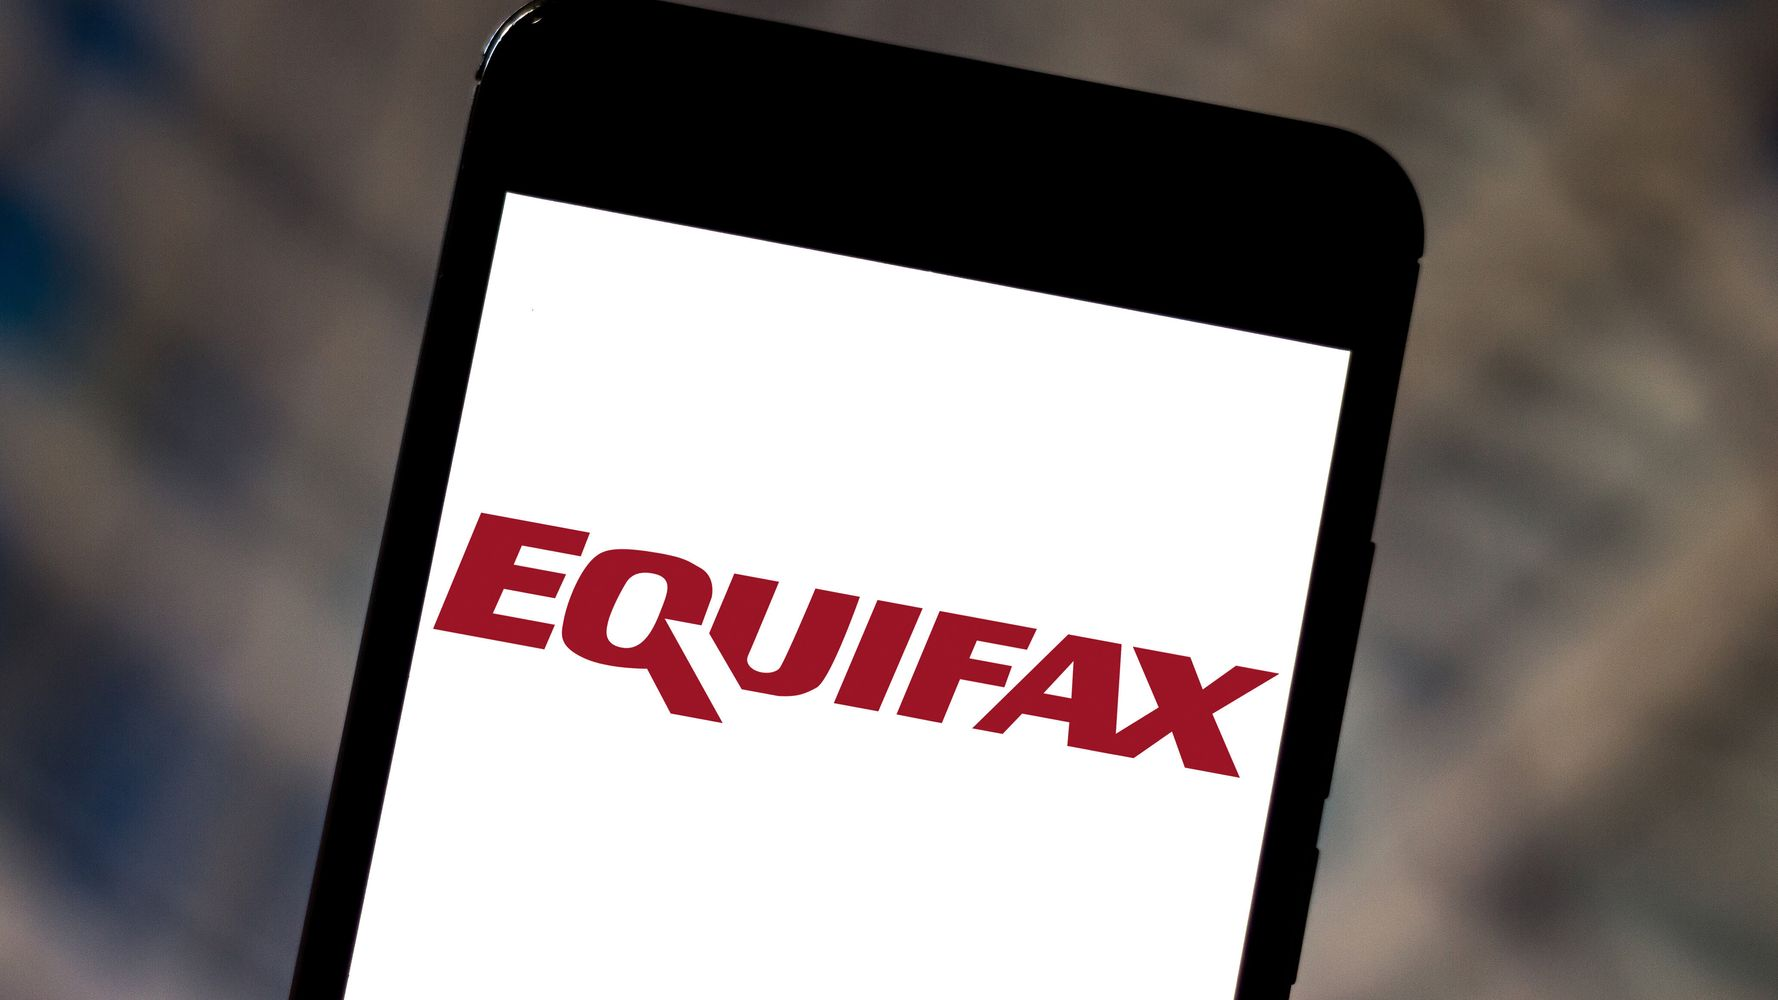 So, Equifax Is Probably Not Going To Send You That $125 Check After All